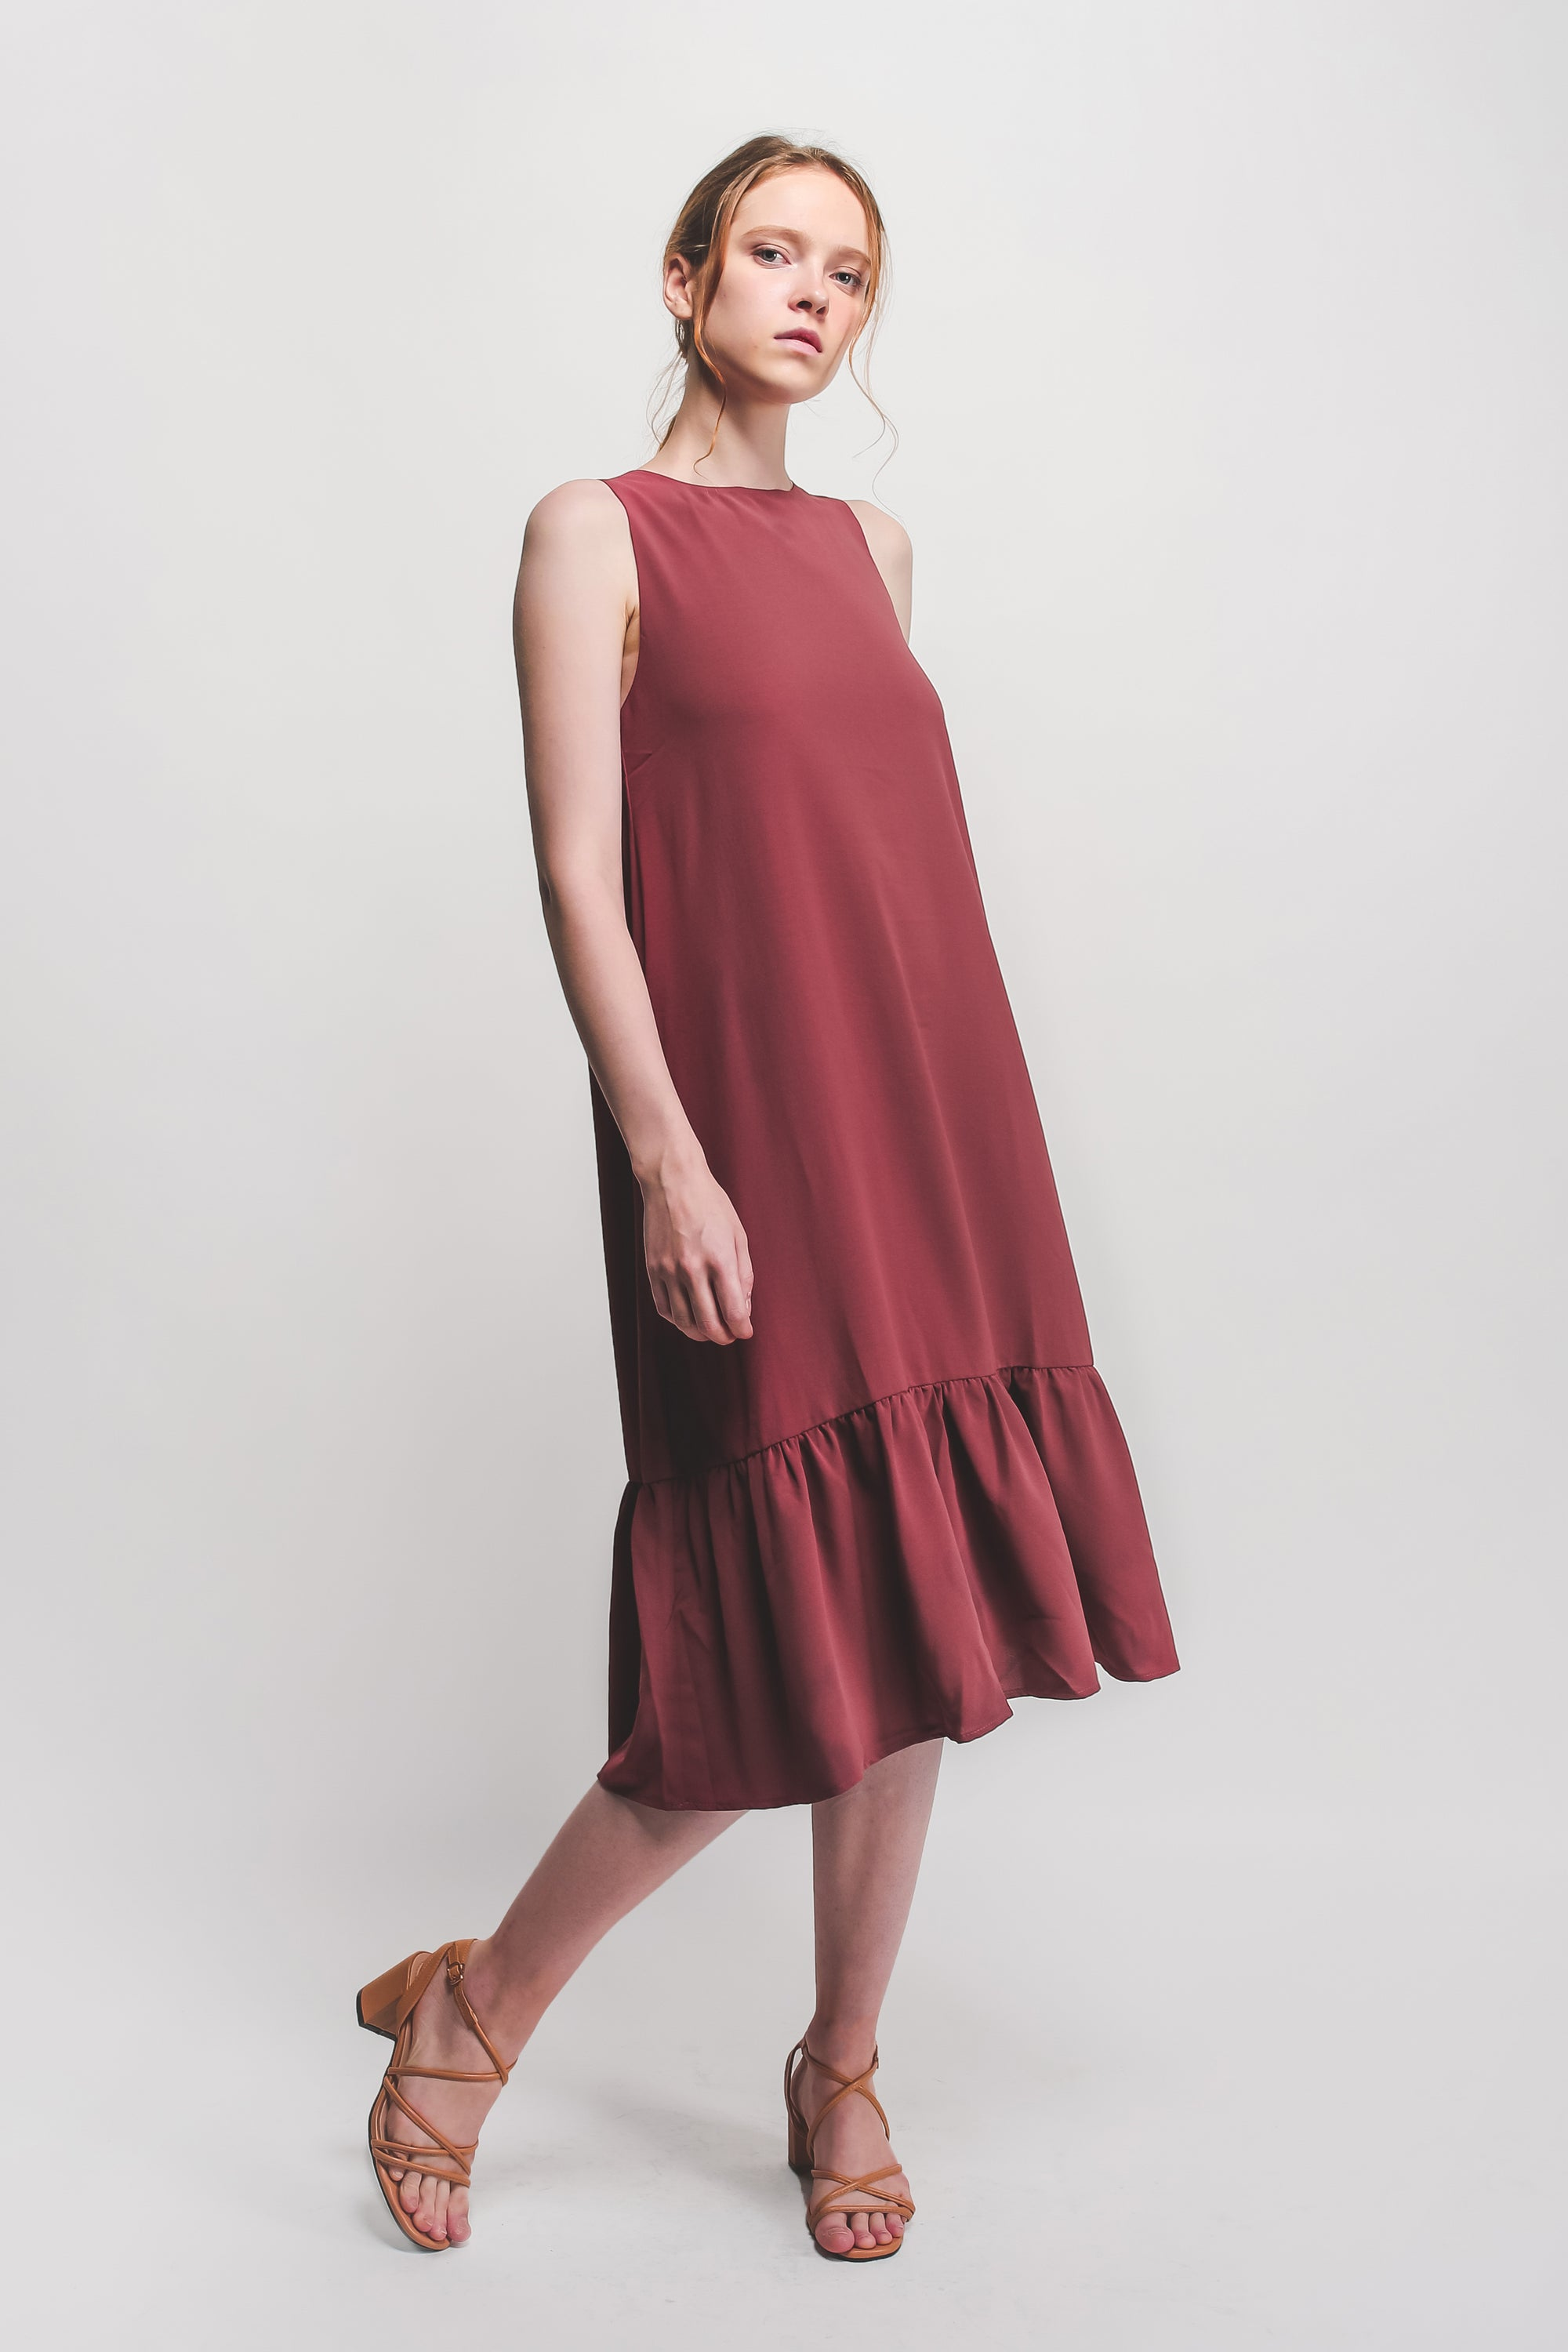 Ruffle Hem A-Line Dress In Dusty Rose